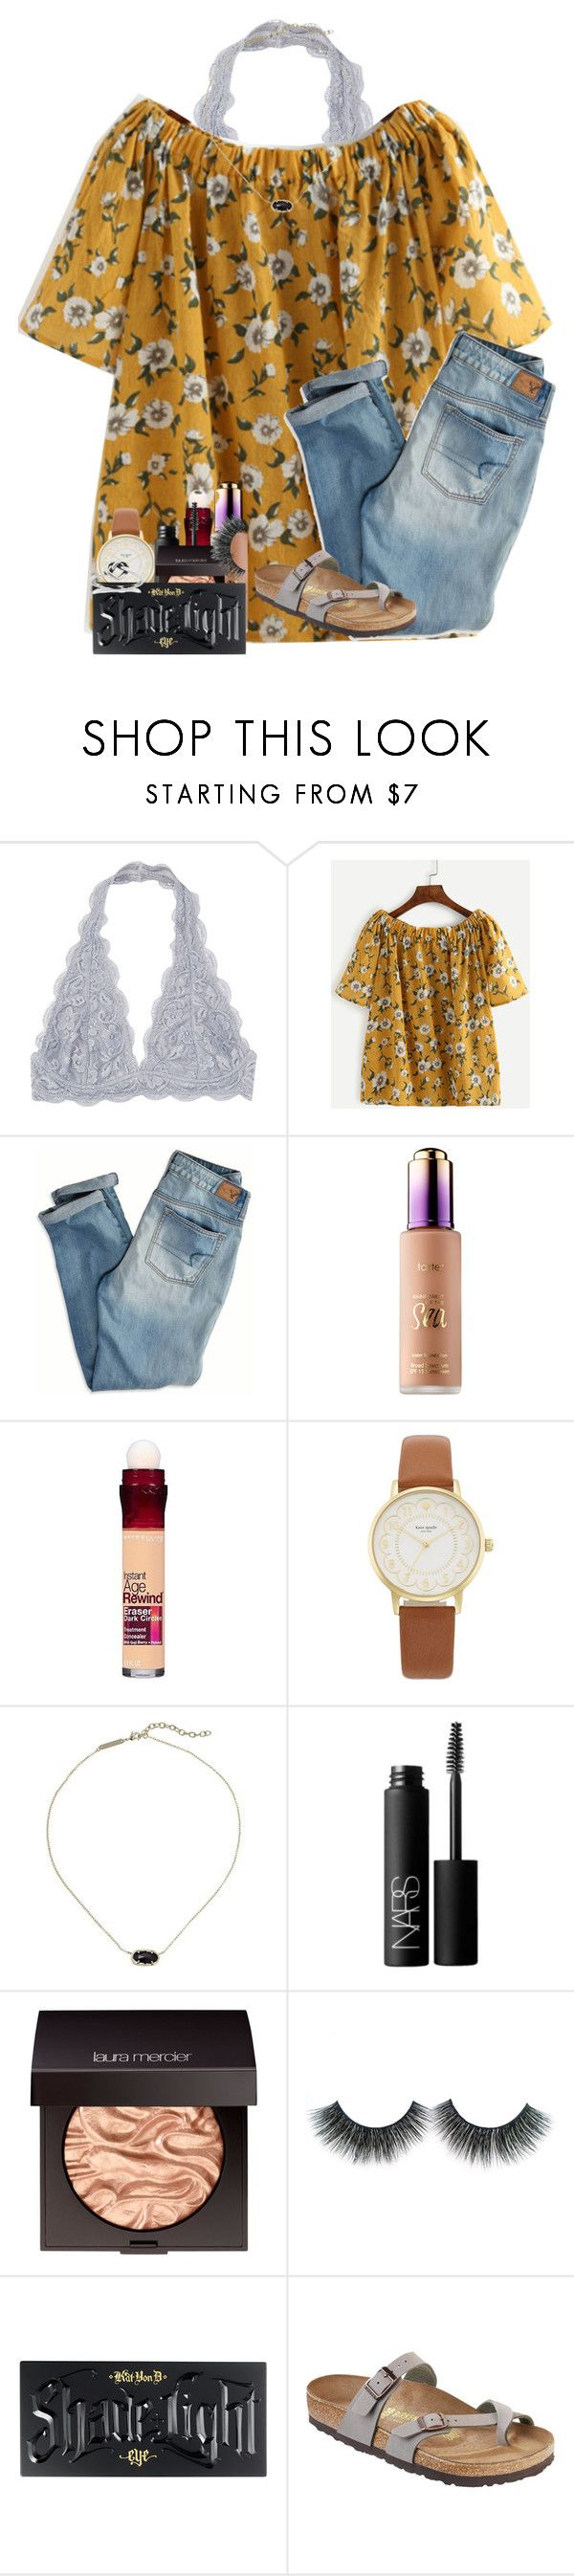 """pinterest & instagram in description"" by kyliegrace ❤ liked on Polyvore featuring American Eagle Outfitters, Maybelline, Kate Spade, Kendra Scott, NARS Cosmetics, Laura Mercier, Kat Von D and Birkenstock"